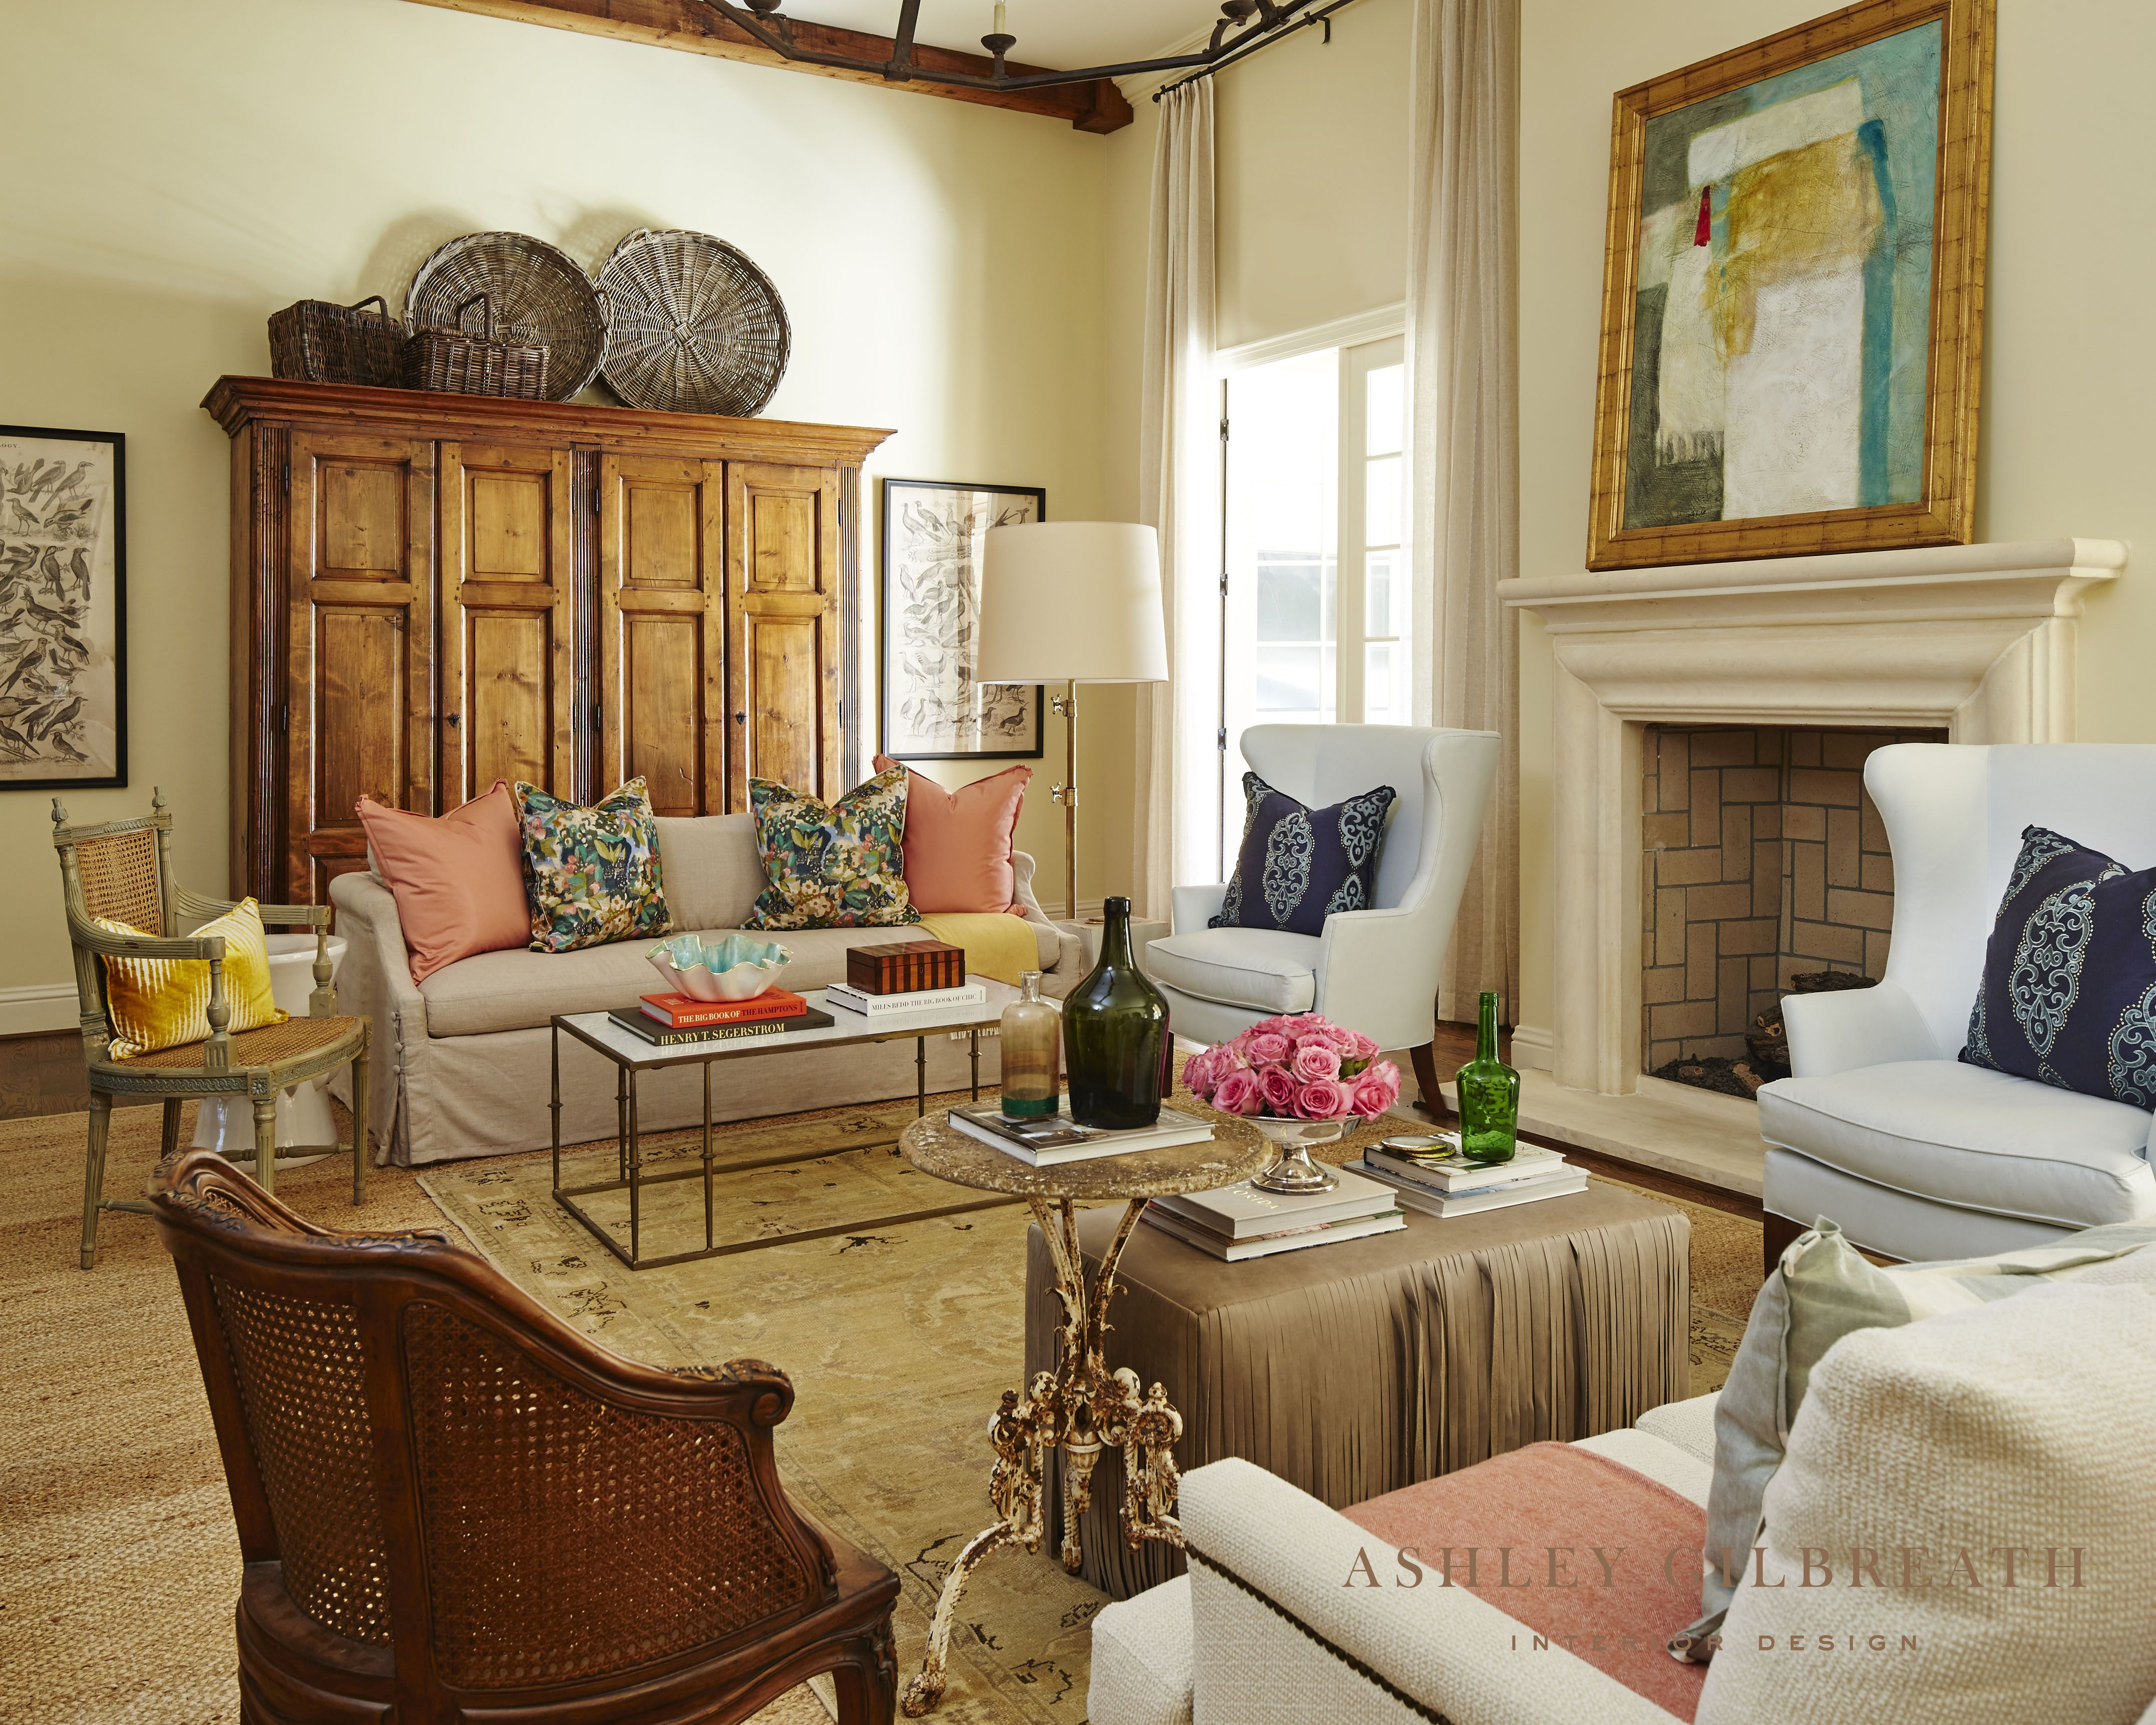 Southern Charm Project Living Room Ashley Gilbreath Interiors Brown Dining Room Set Interior Design Southern living room decor